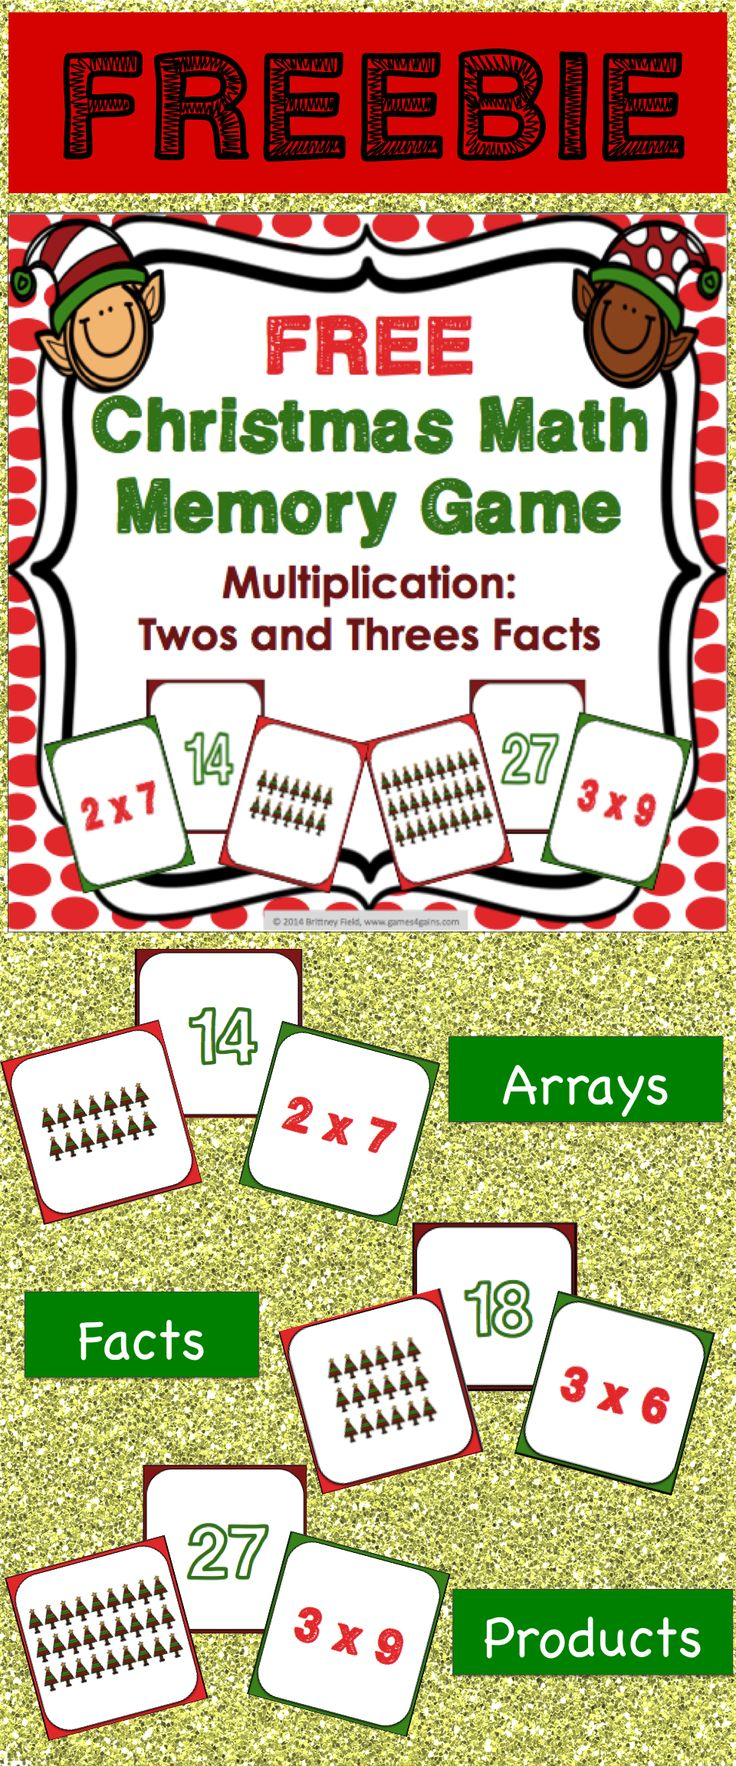 Christmas math game (FREE) makes practicing twos and threes multiplication facts fun! Included are 45 memory cards for students to match the multiplication array, multiplication fact, and product. This is a perfect activity for small groups and centers during the Christmas season!